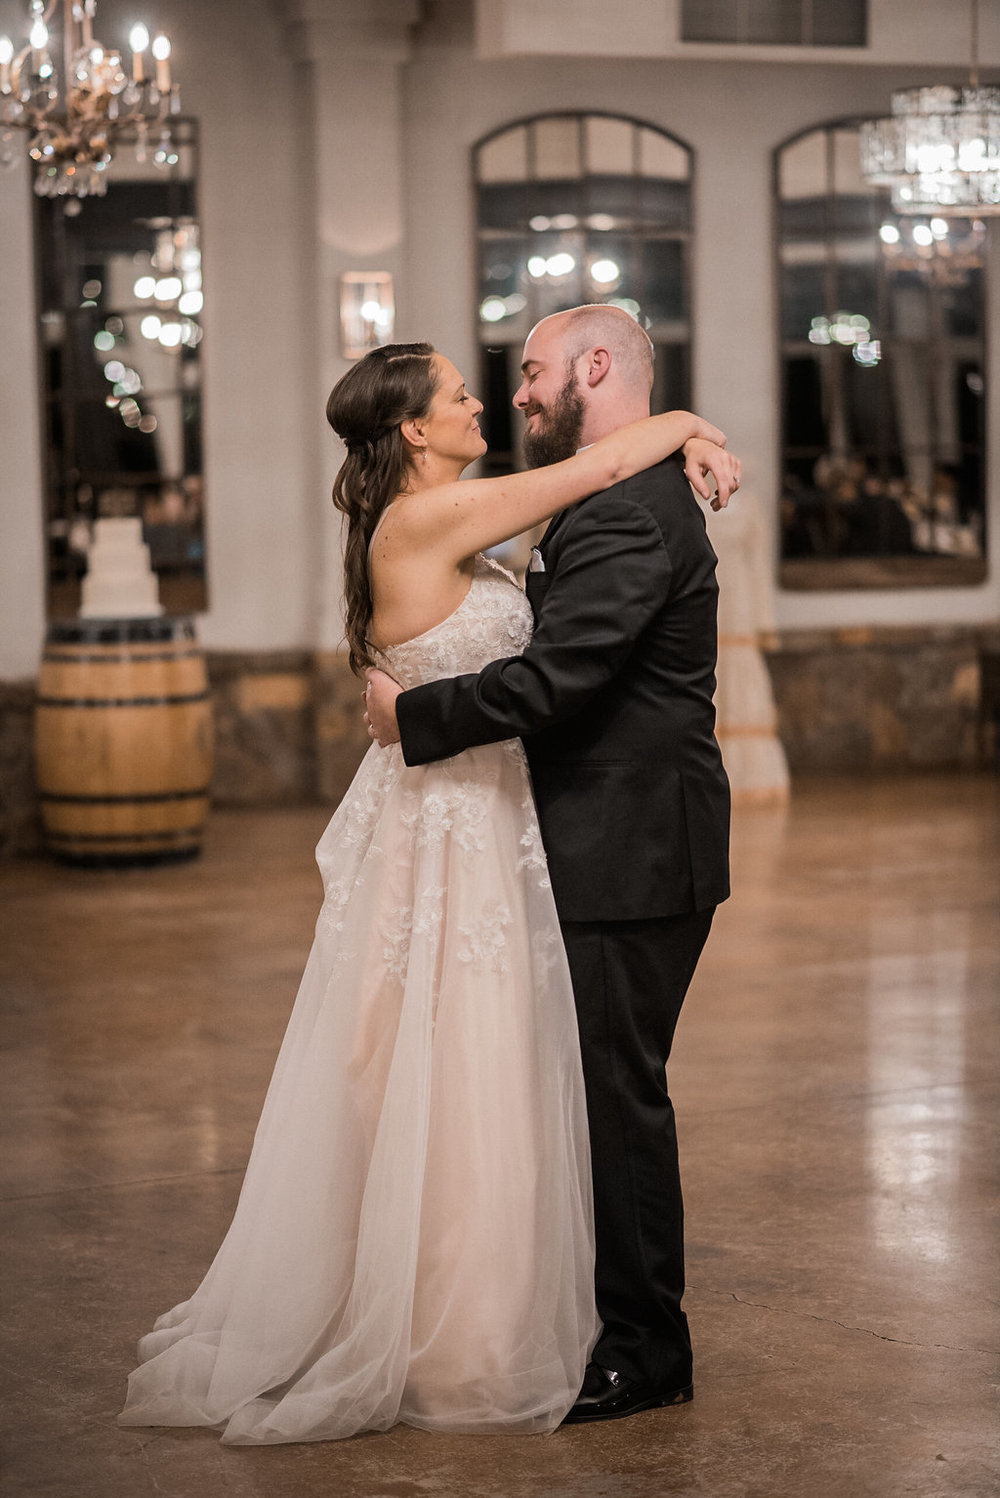 bride and groom first dance at stone tower wedding photo